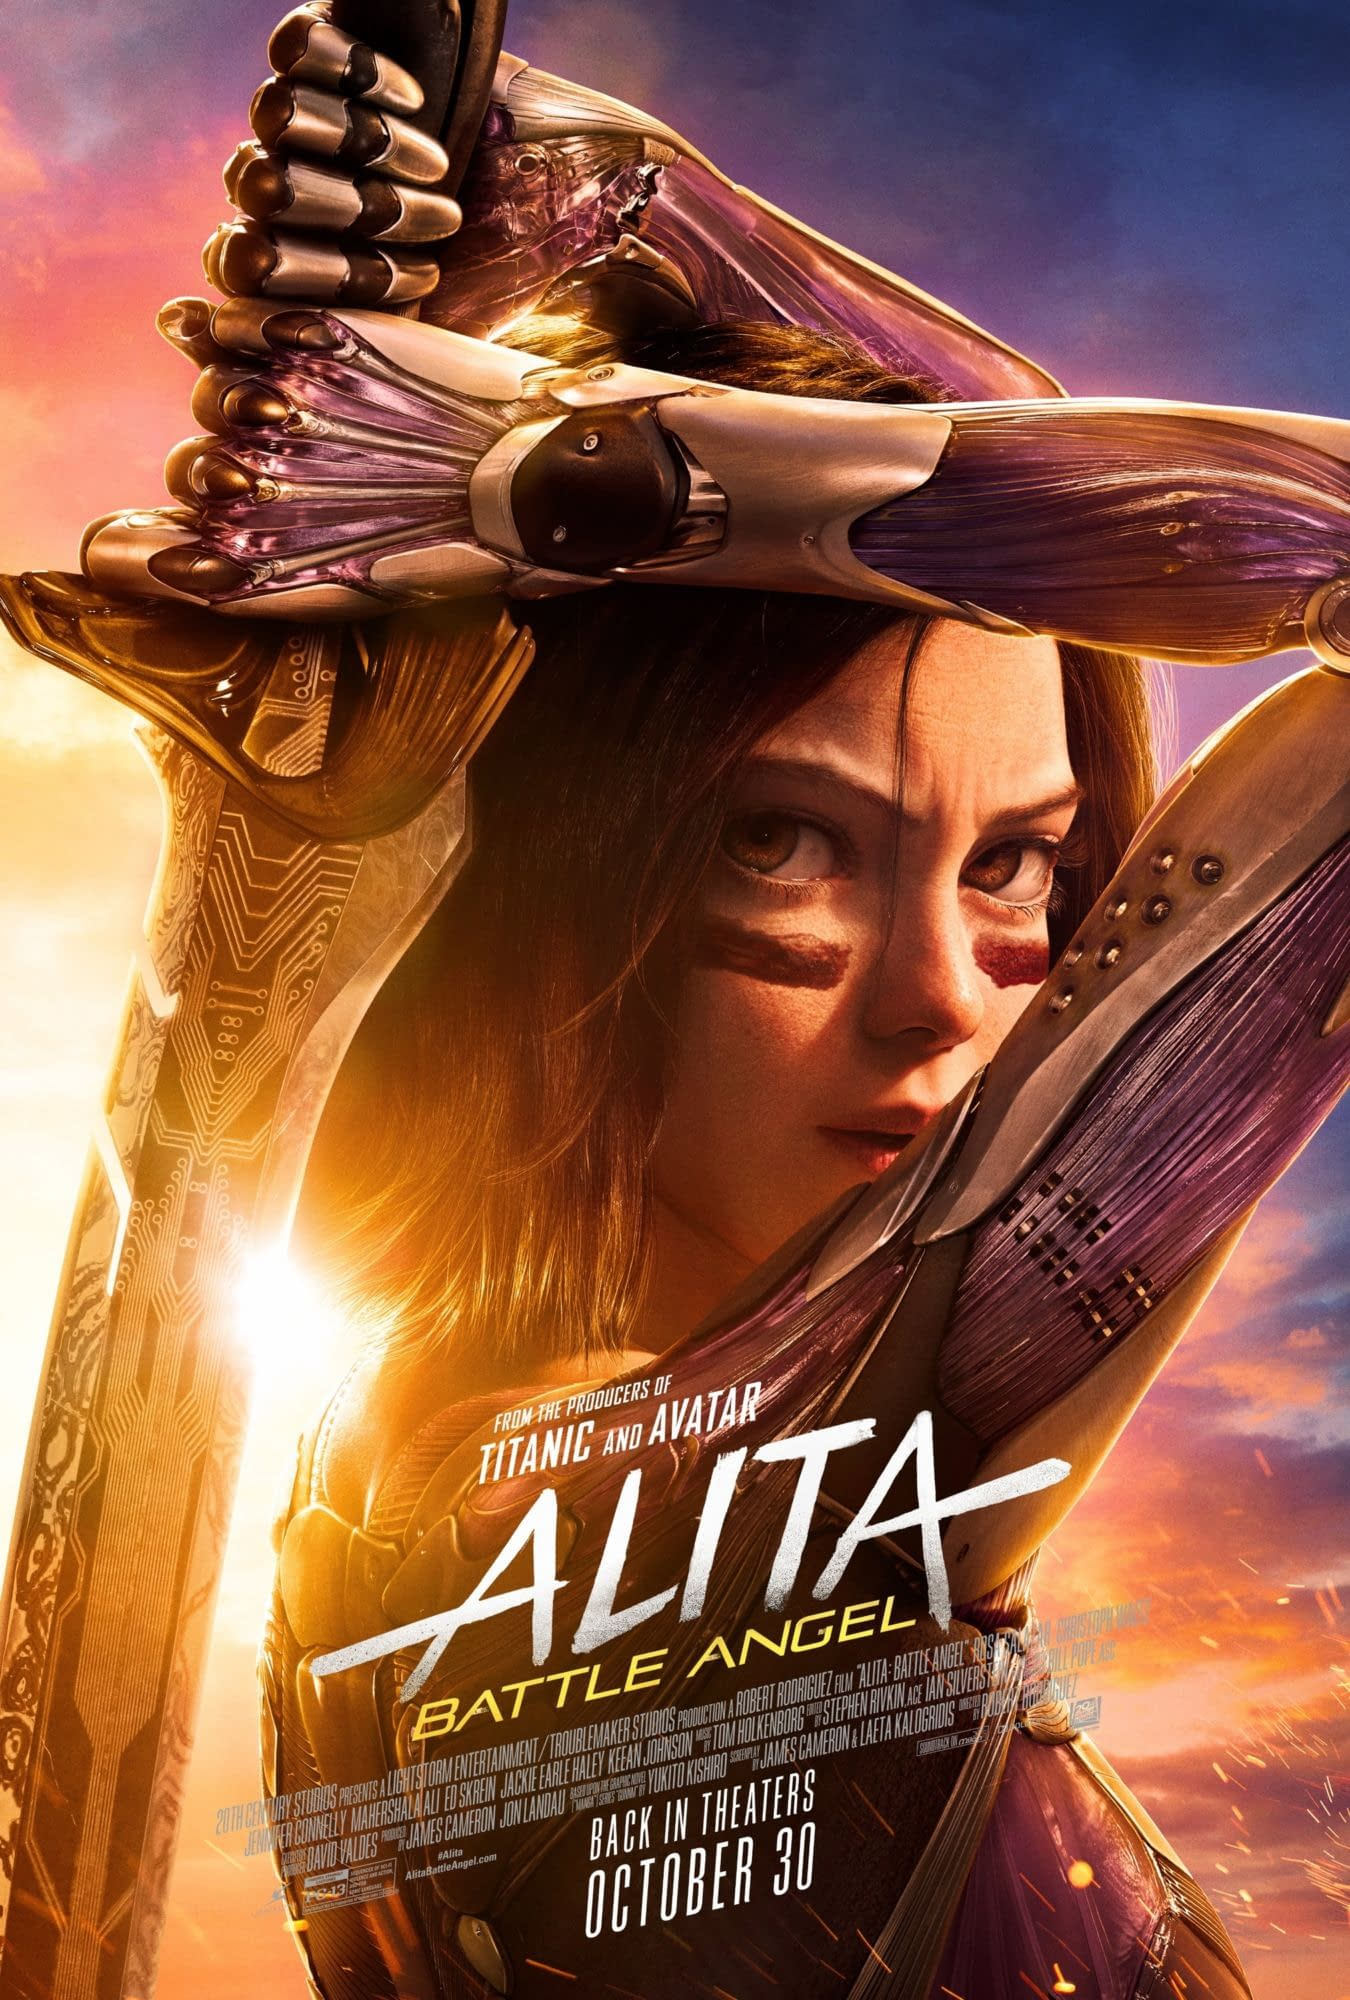 A New Alita Battle Angel Poster Has Dropped For The Rerelease